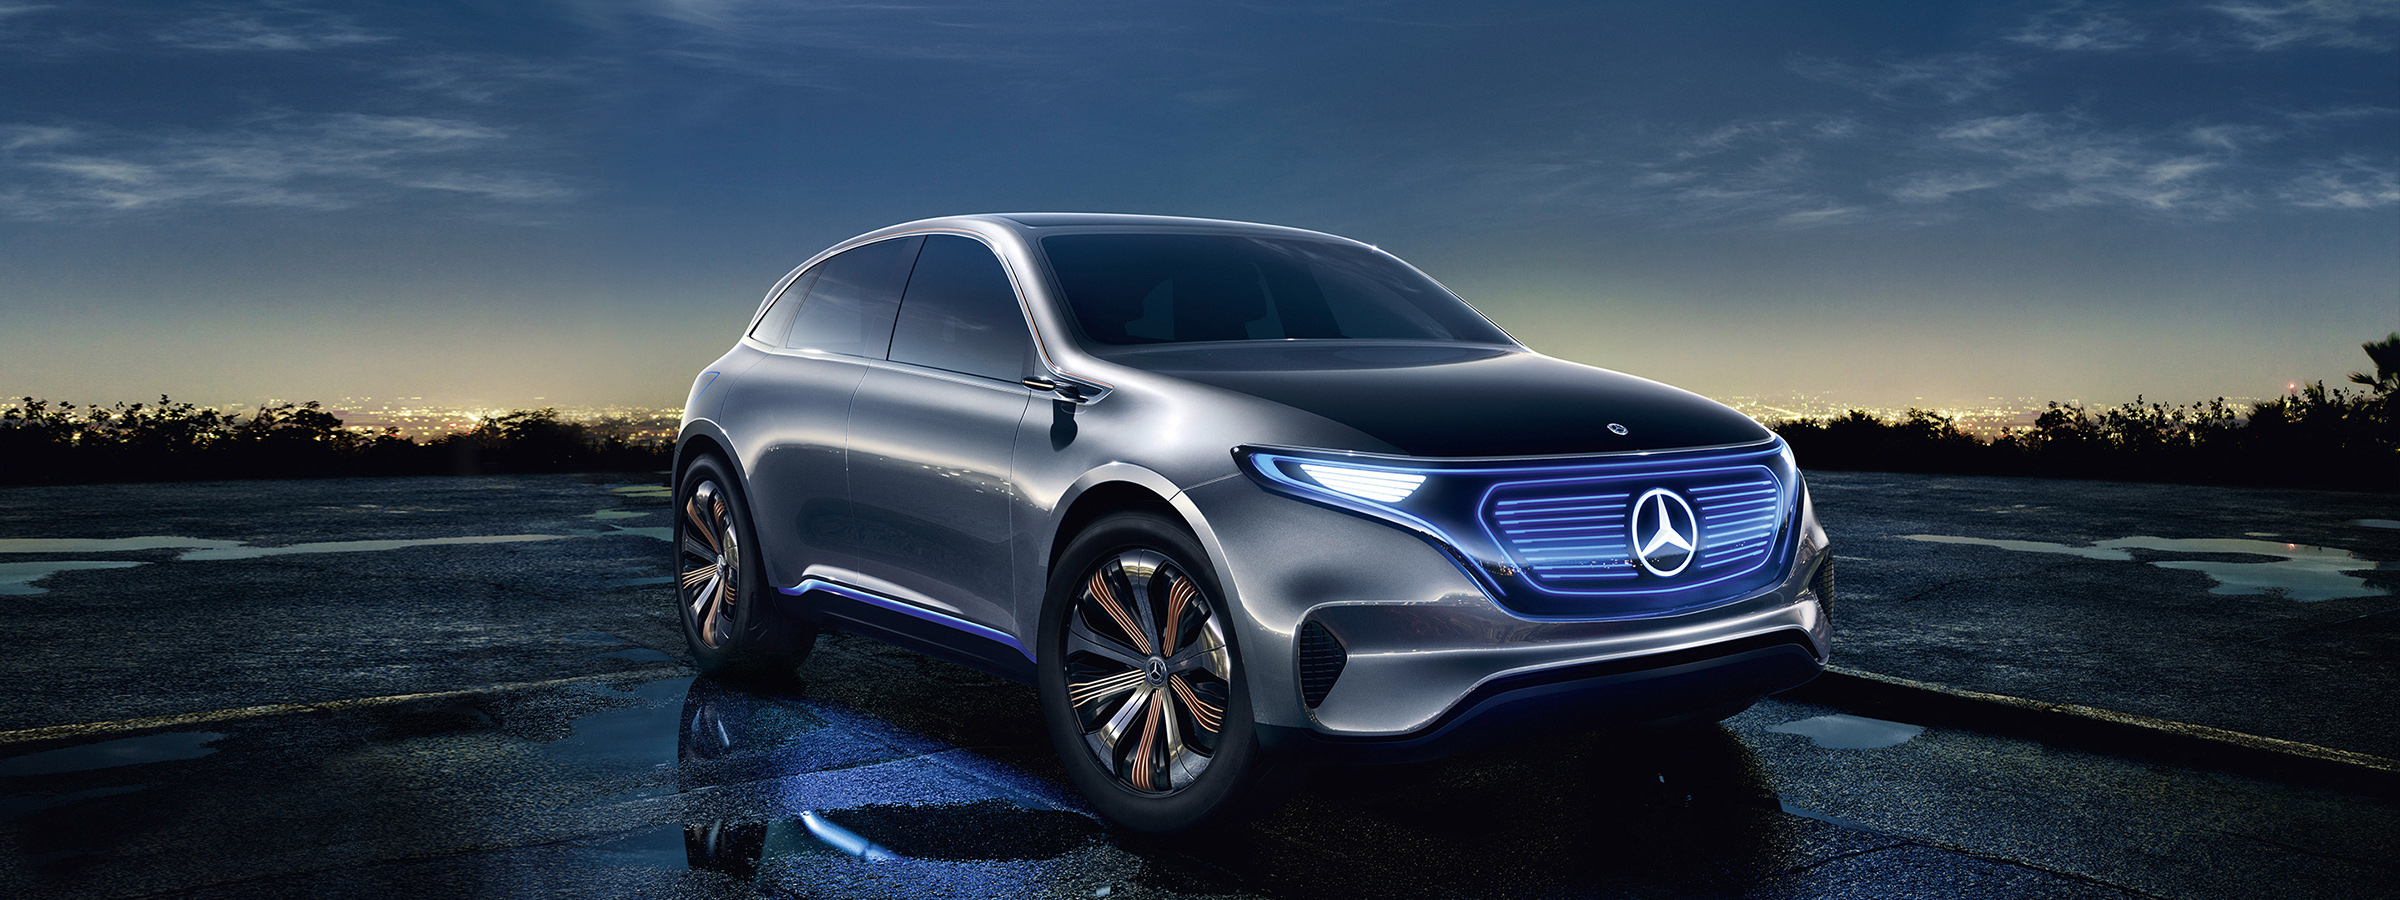 The Electric Intelligence concept car displays its digital grille and seamless design.